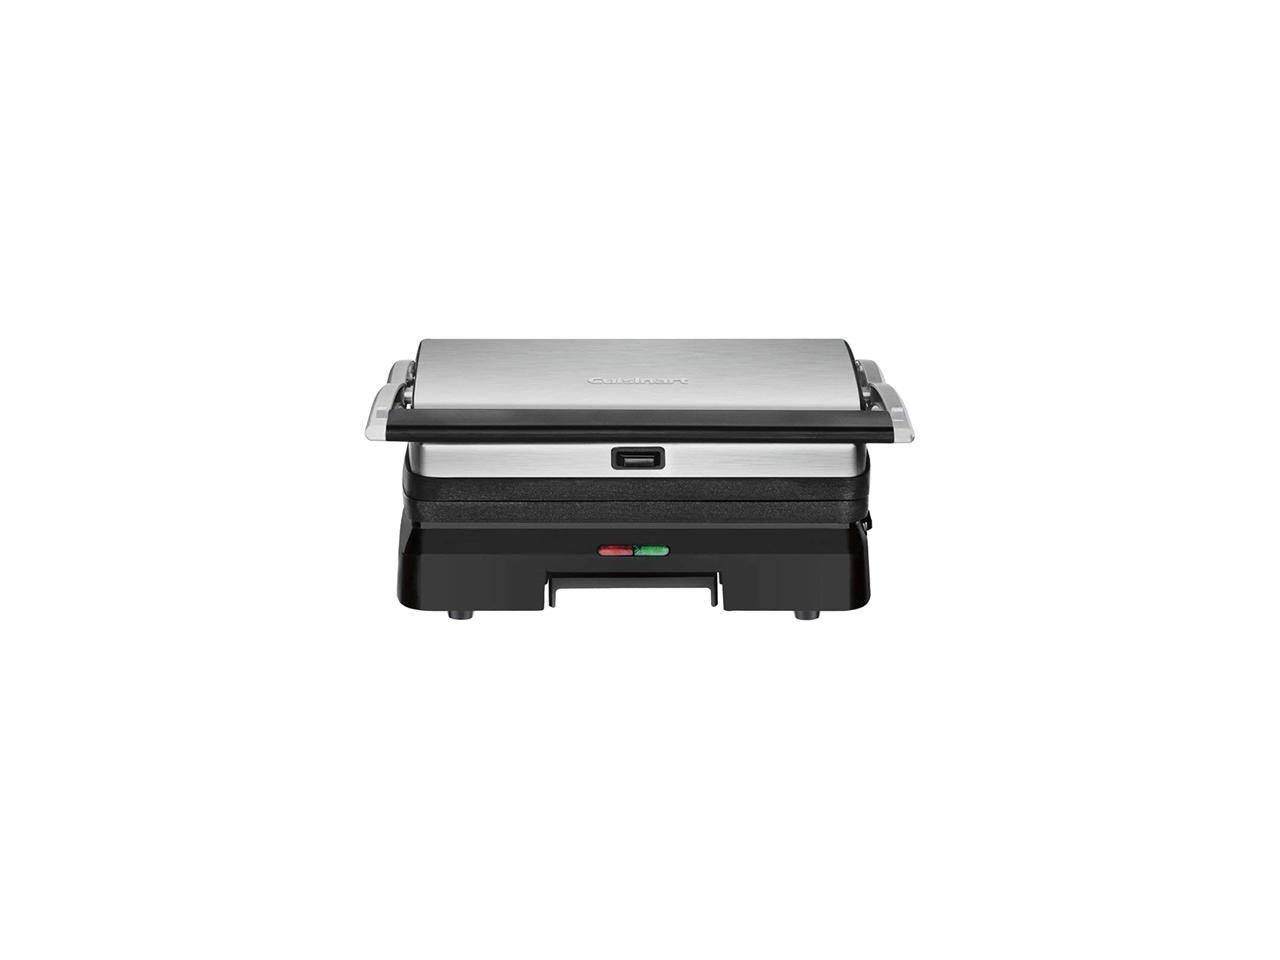 Cuisinart griddler & panini press gr-11